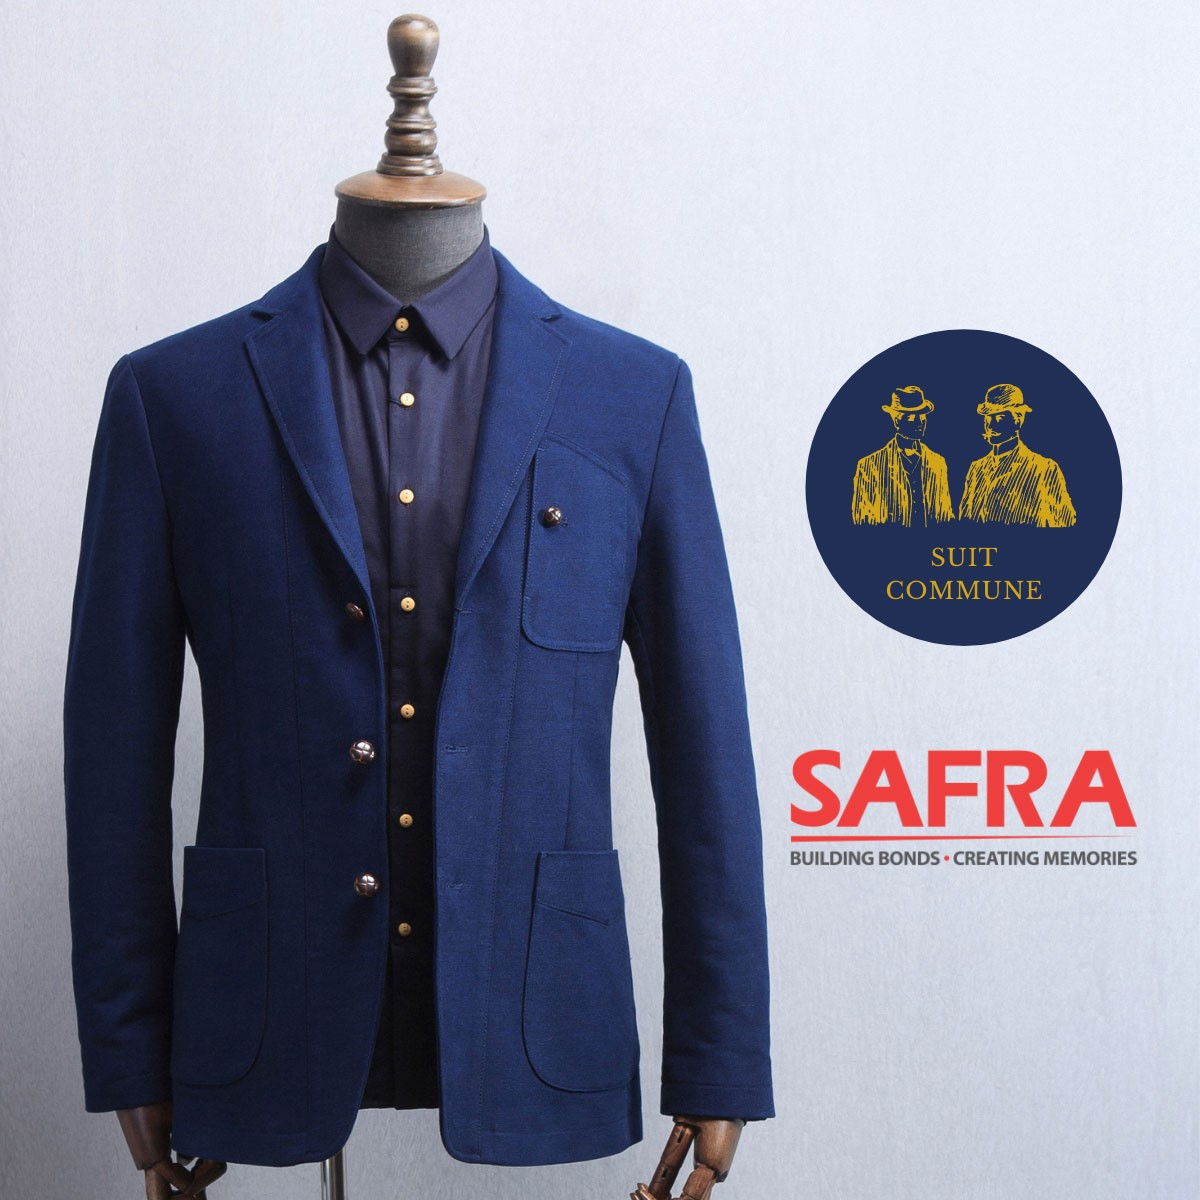 Suit Commune - Receive A Complimentary Lining With Every Purchase Of A 2-Piece Suit